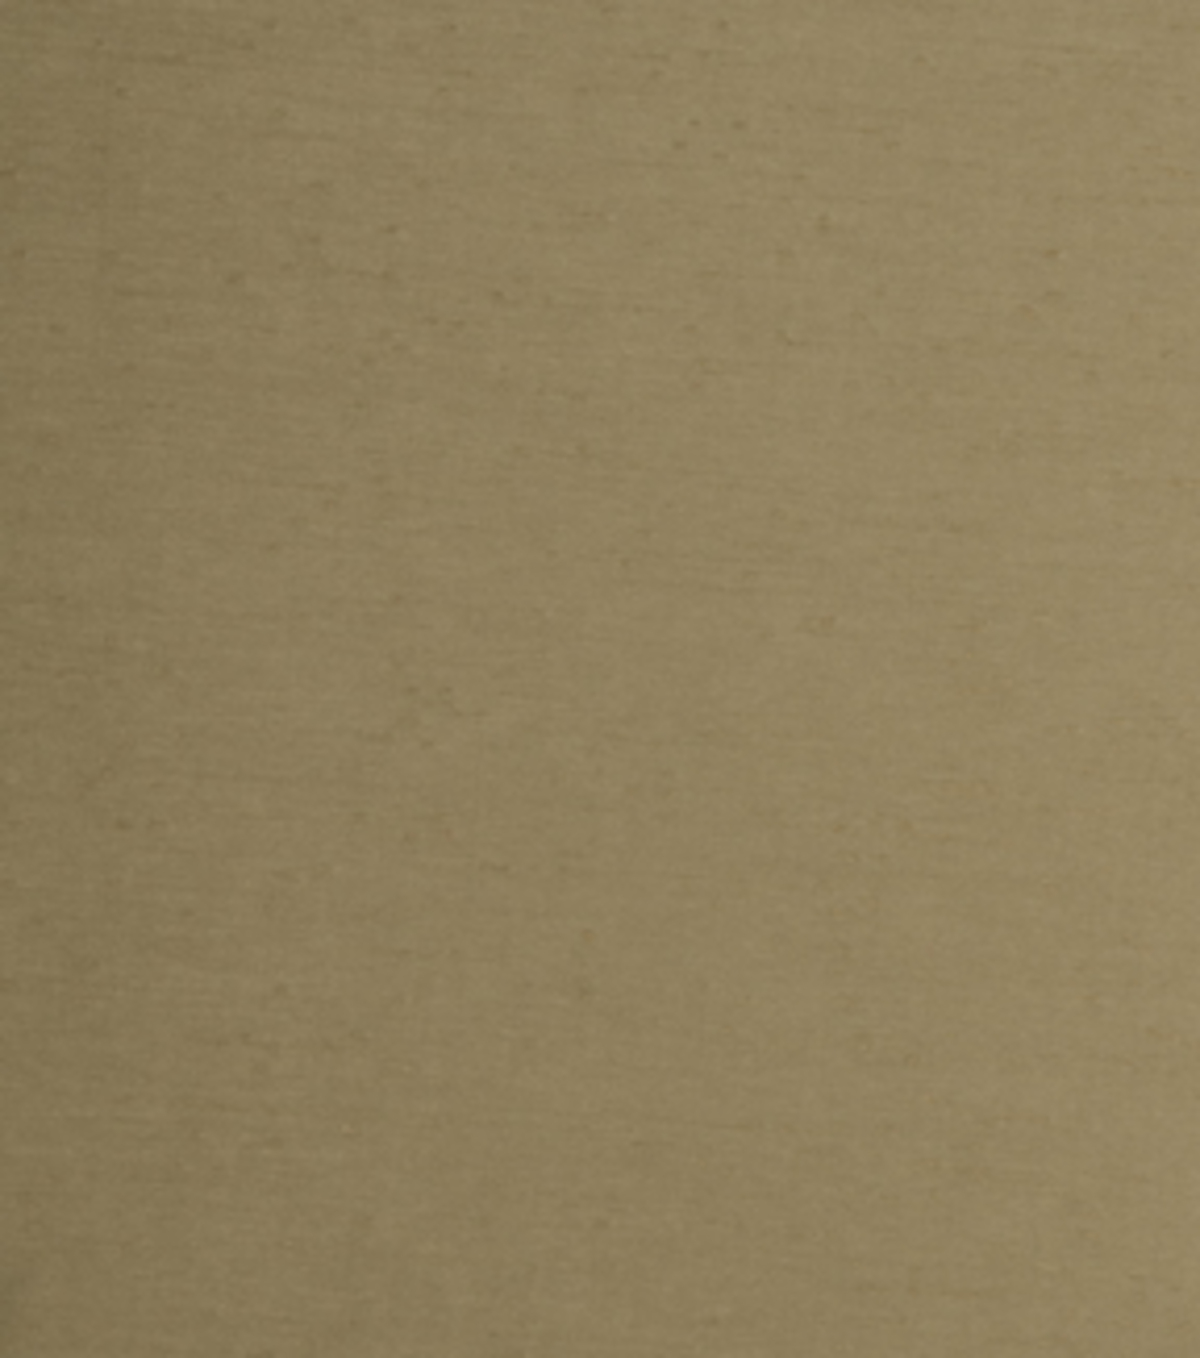 Home Decor 8\u0022x8\u0022 Fabric Swatch-Signature Series Airforce Smoke